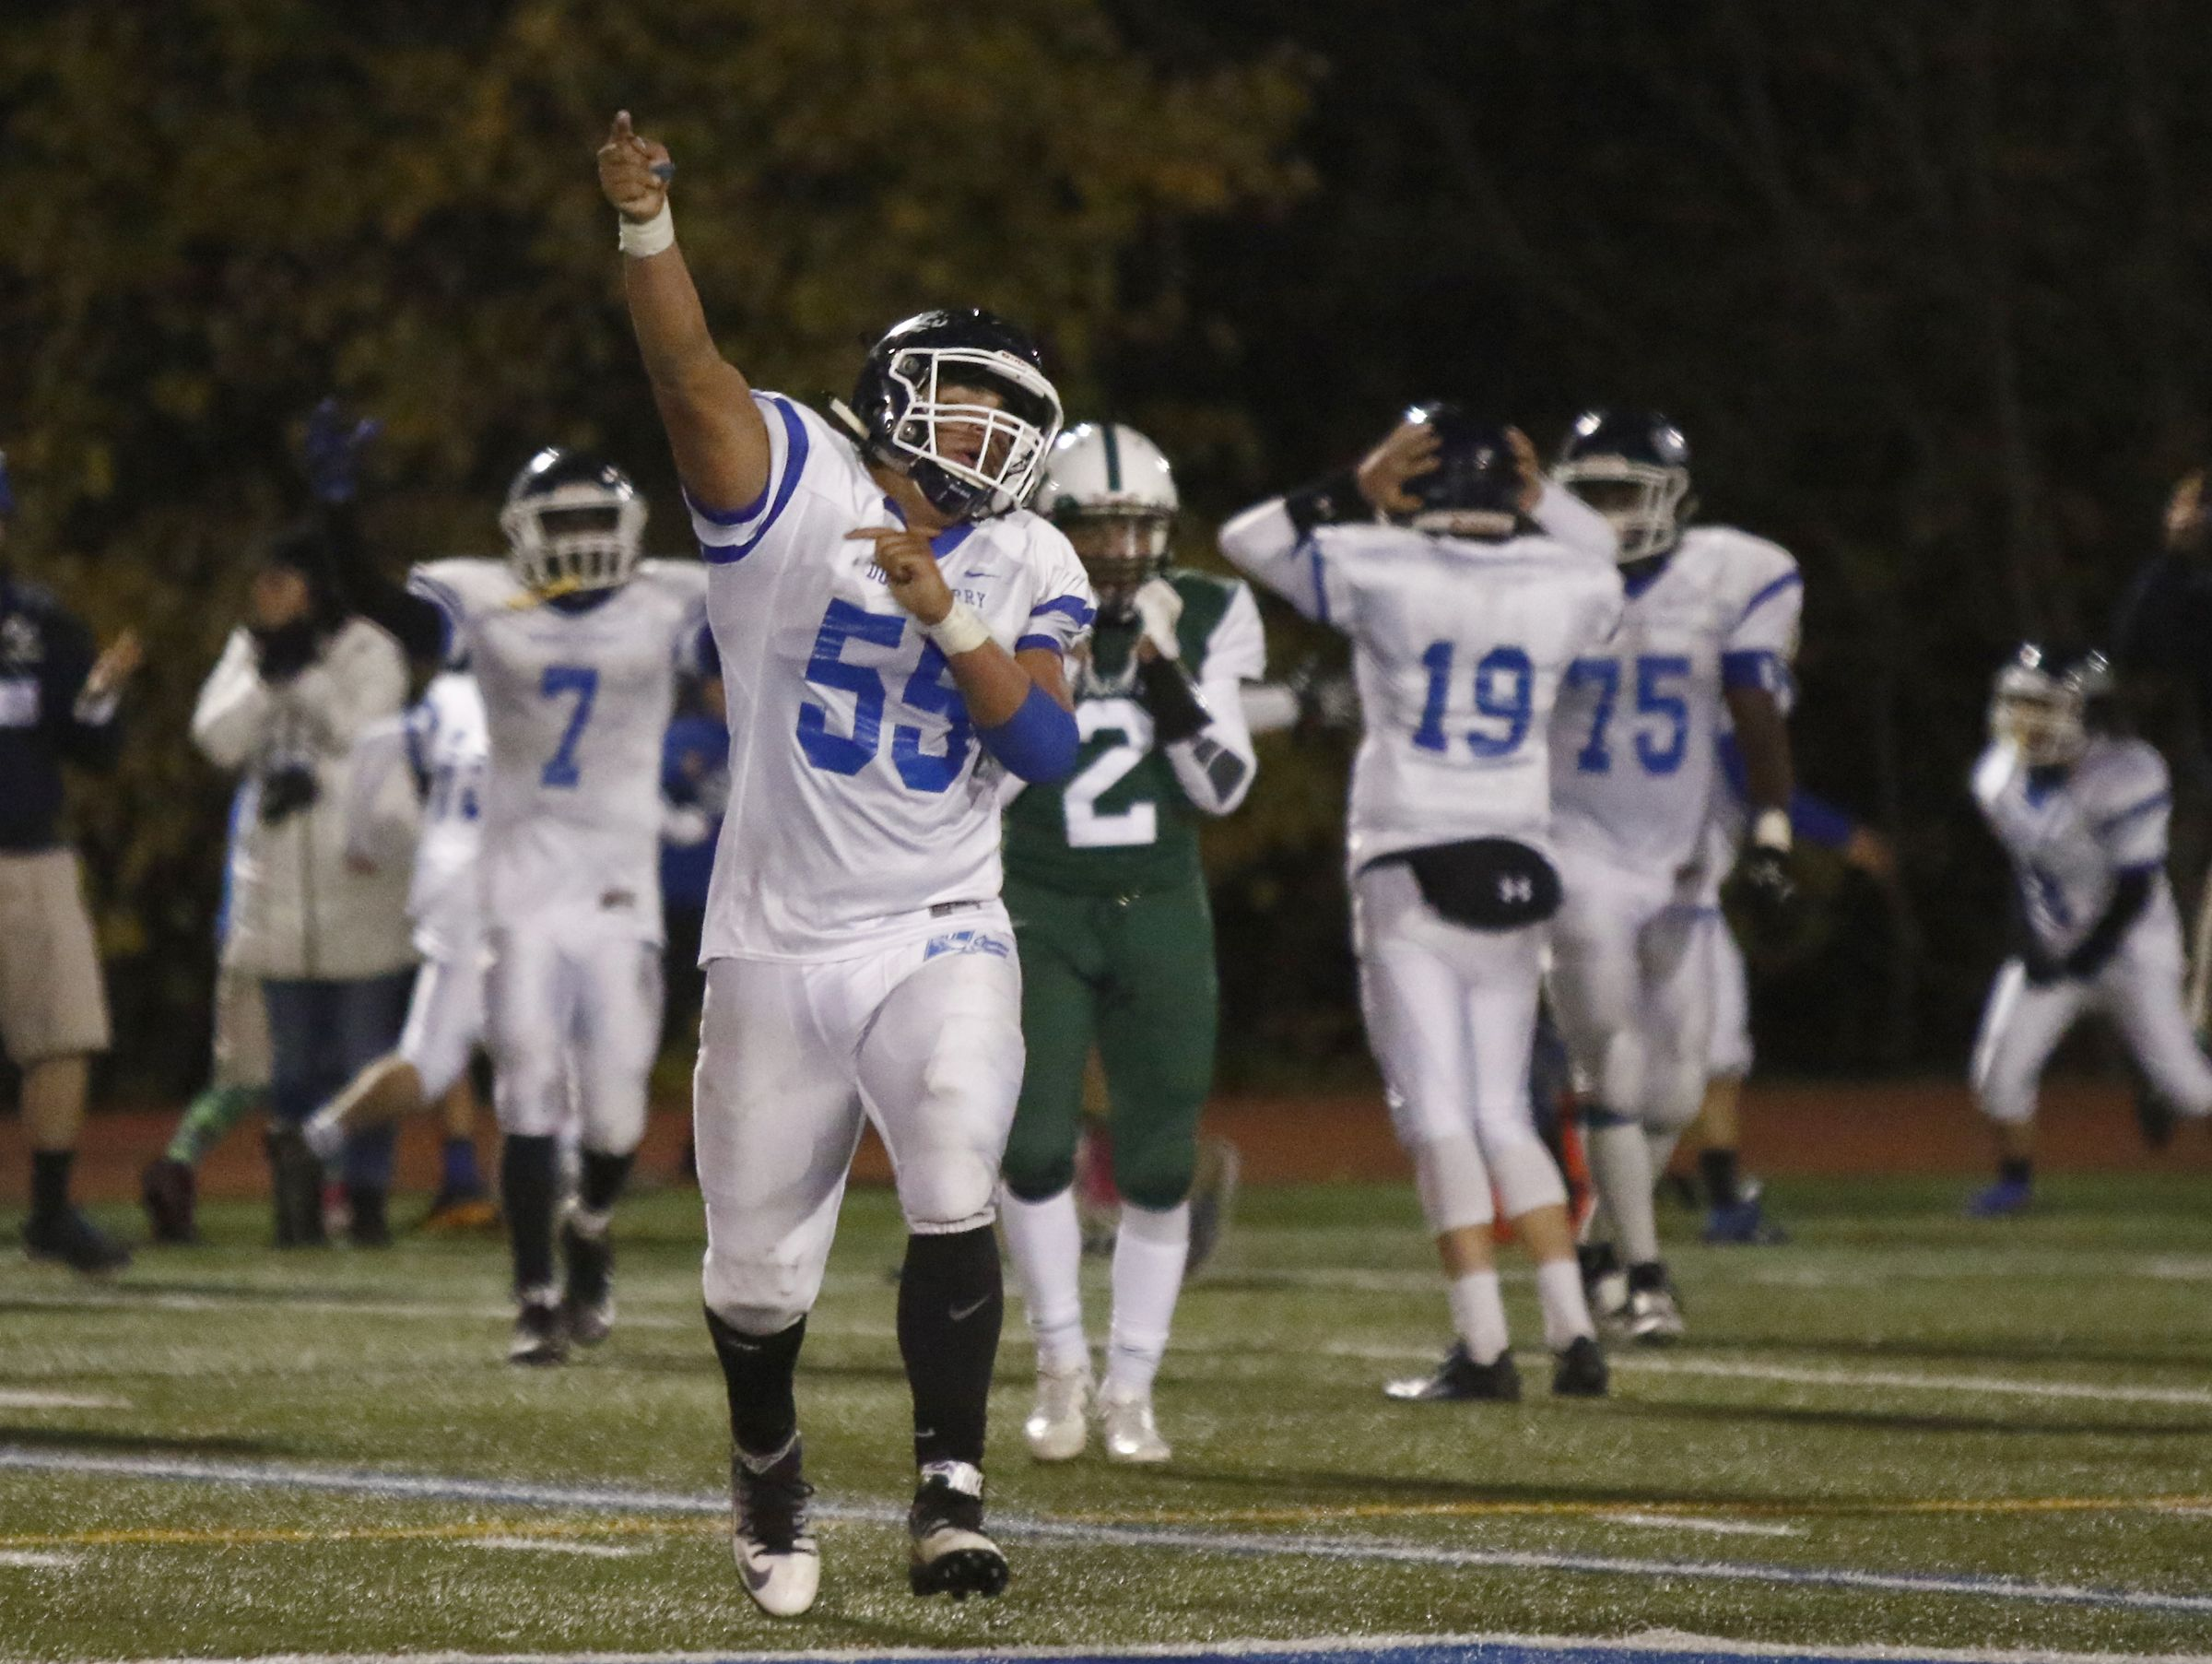 Dobbs Ferry's Jordan Loran (55) reacts after a turnover in the Eagles' 21-14 win over Woodlands in the Section 1 Class C championship game at Mahopac High School on Friday.